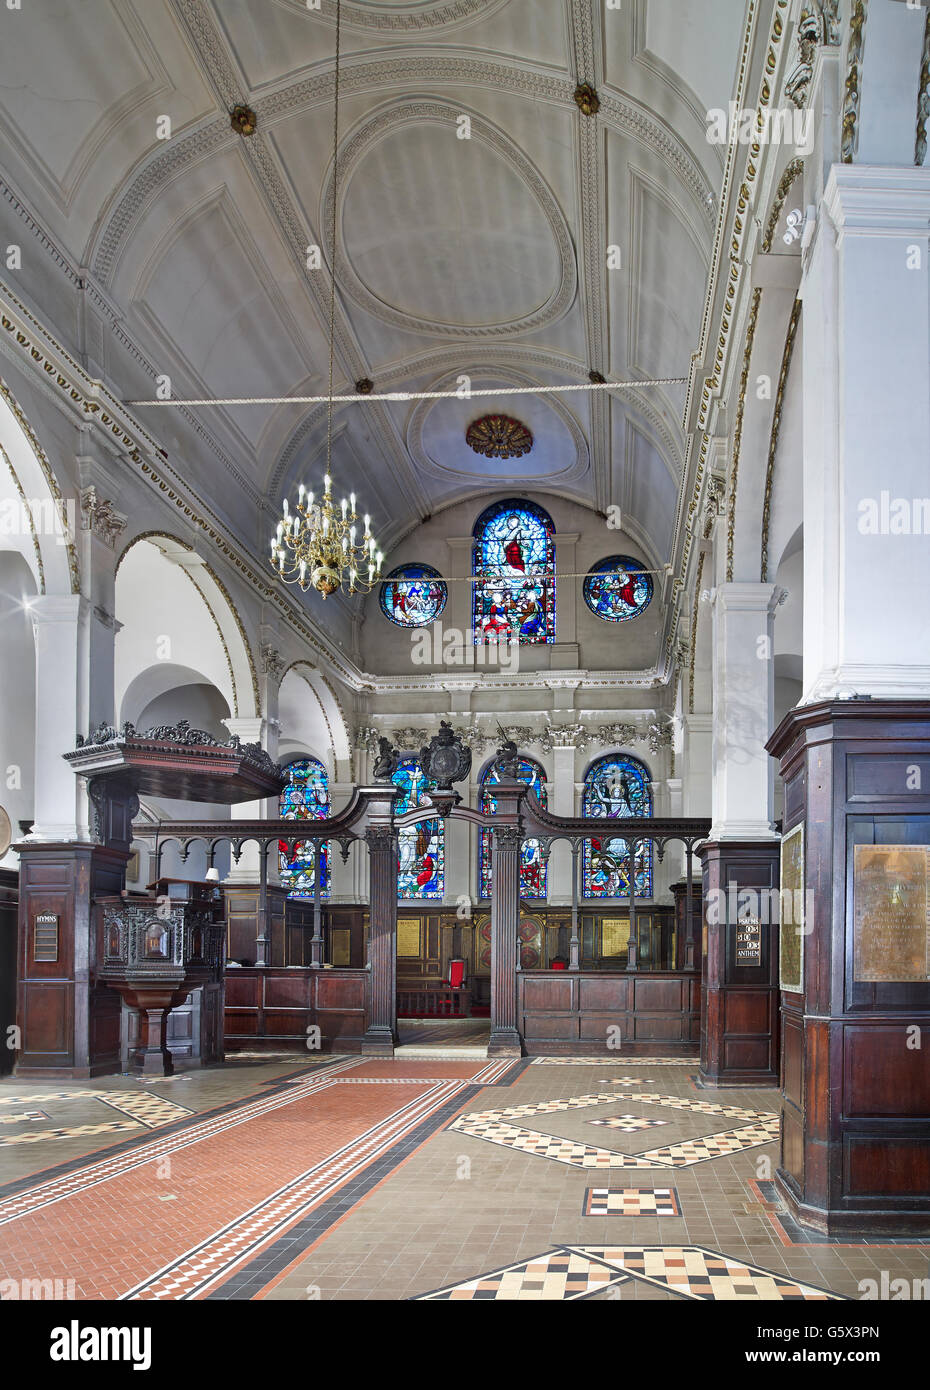 St Peter Cornhill, church in the City of London; nave and screen - Stock Image